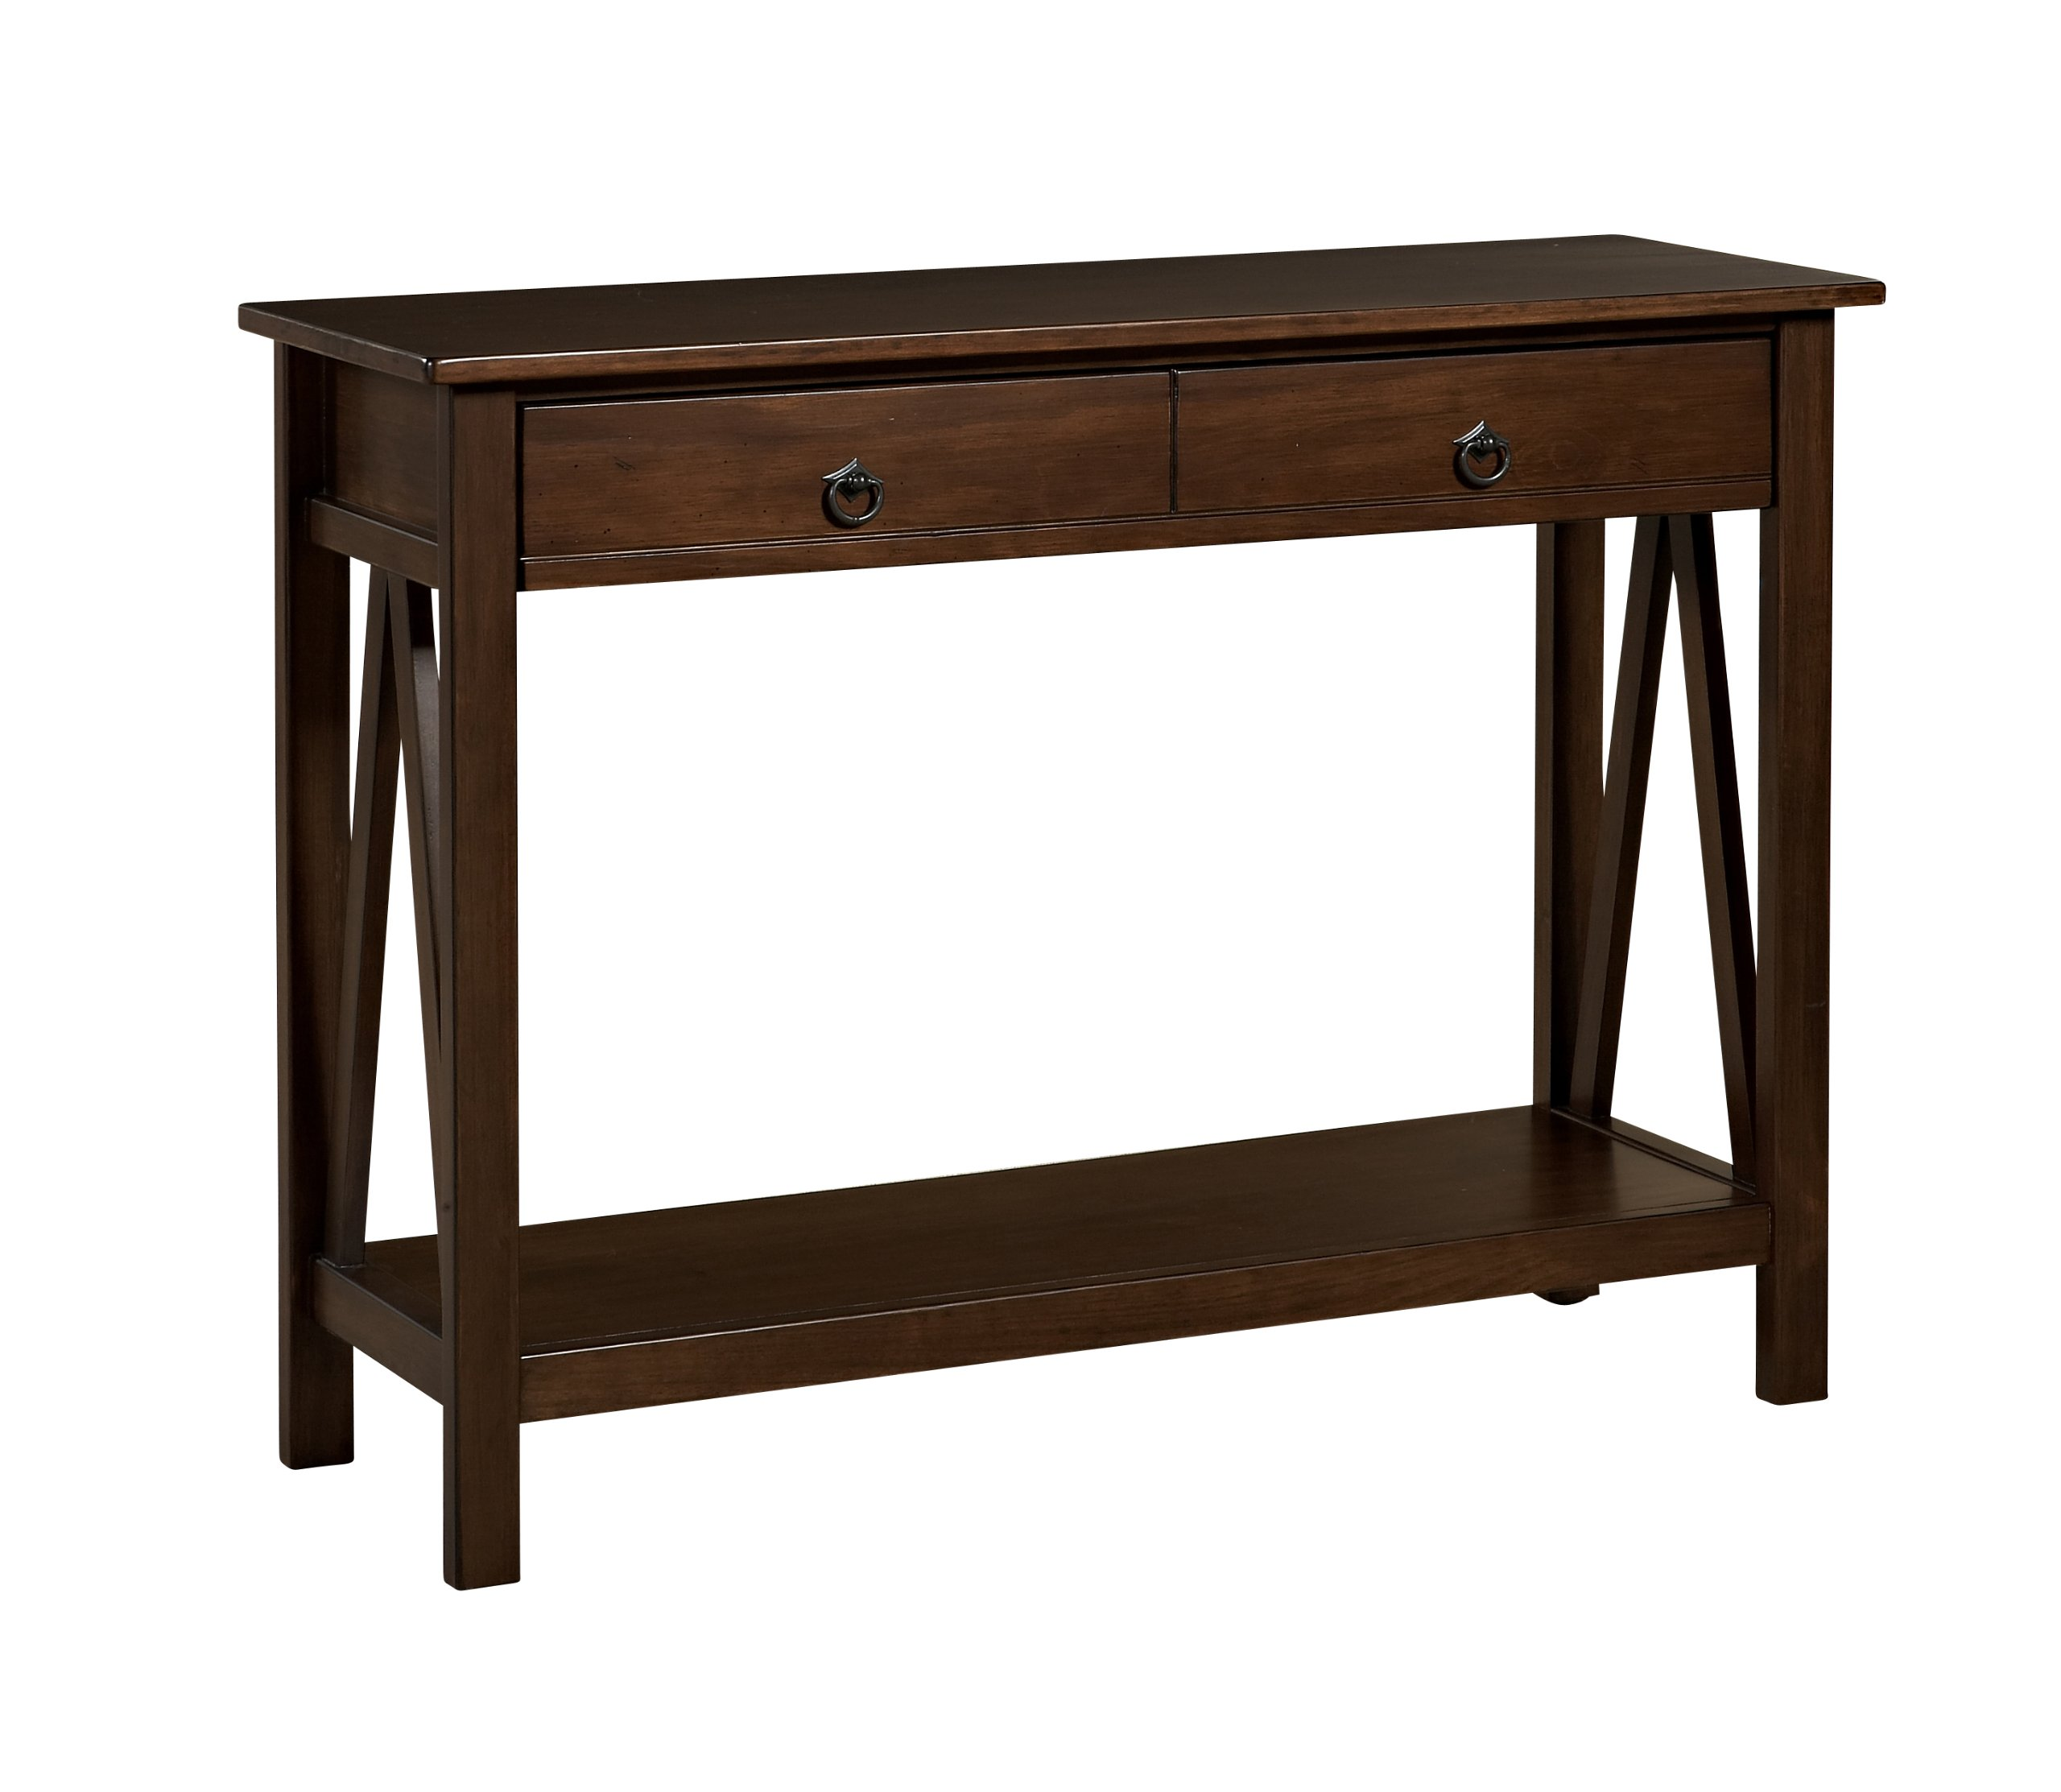 Linon Home Dcor 86152ATOB-01-KD-U Console Table, 42.01'' w x 13.98'' d x 30.71'' h, Antique Tobacco by Linon